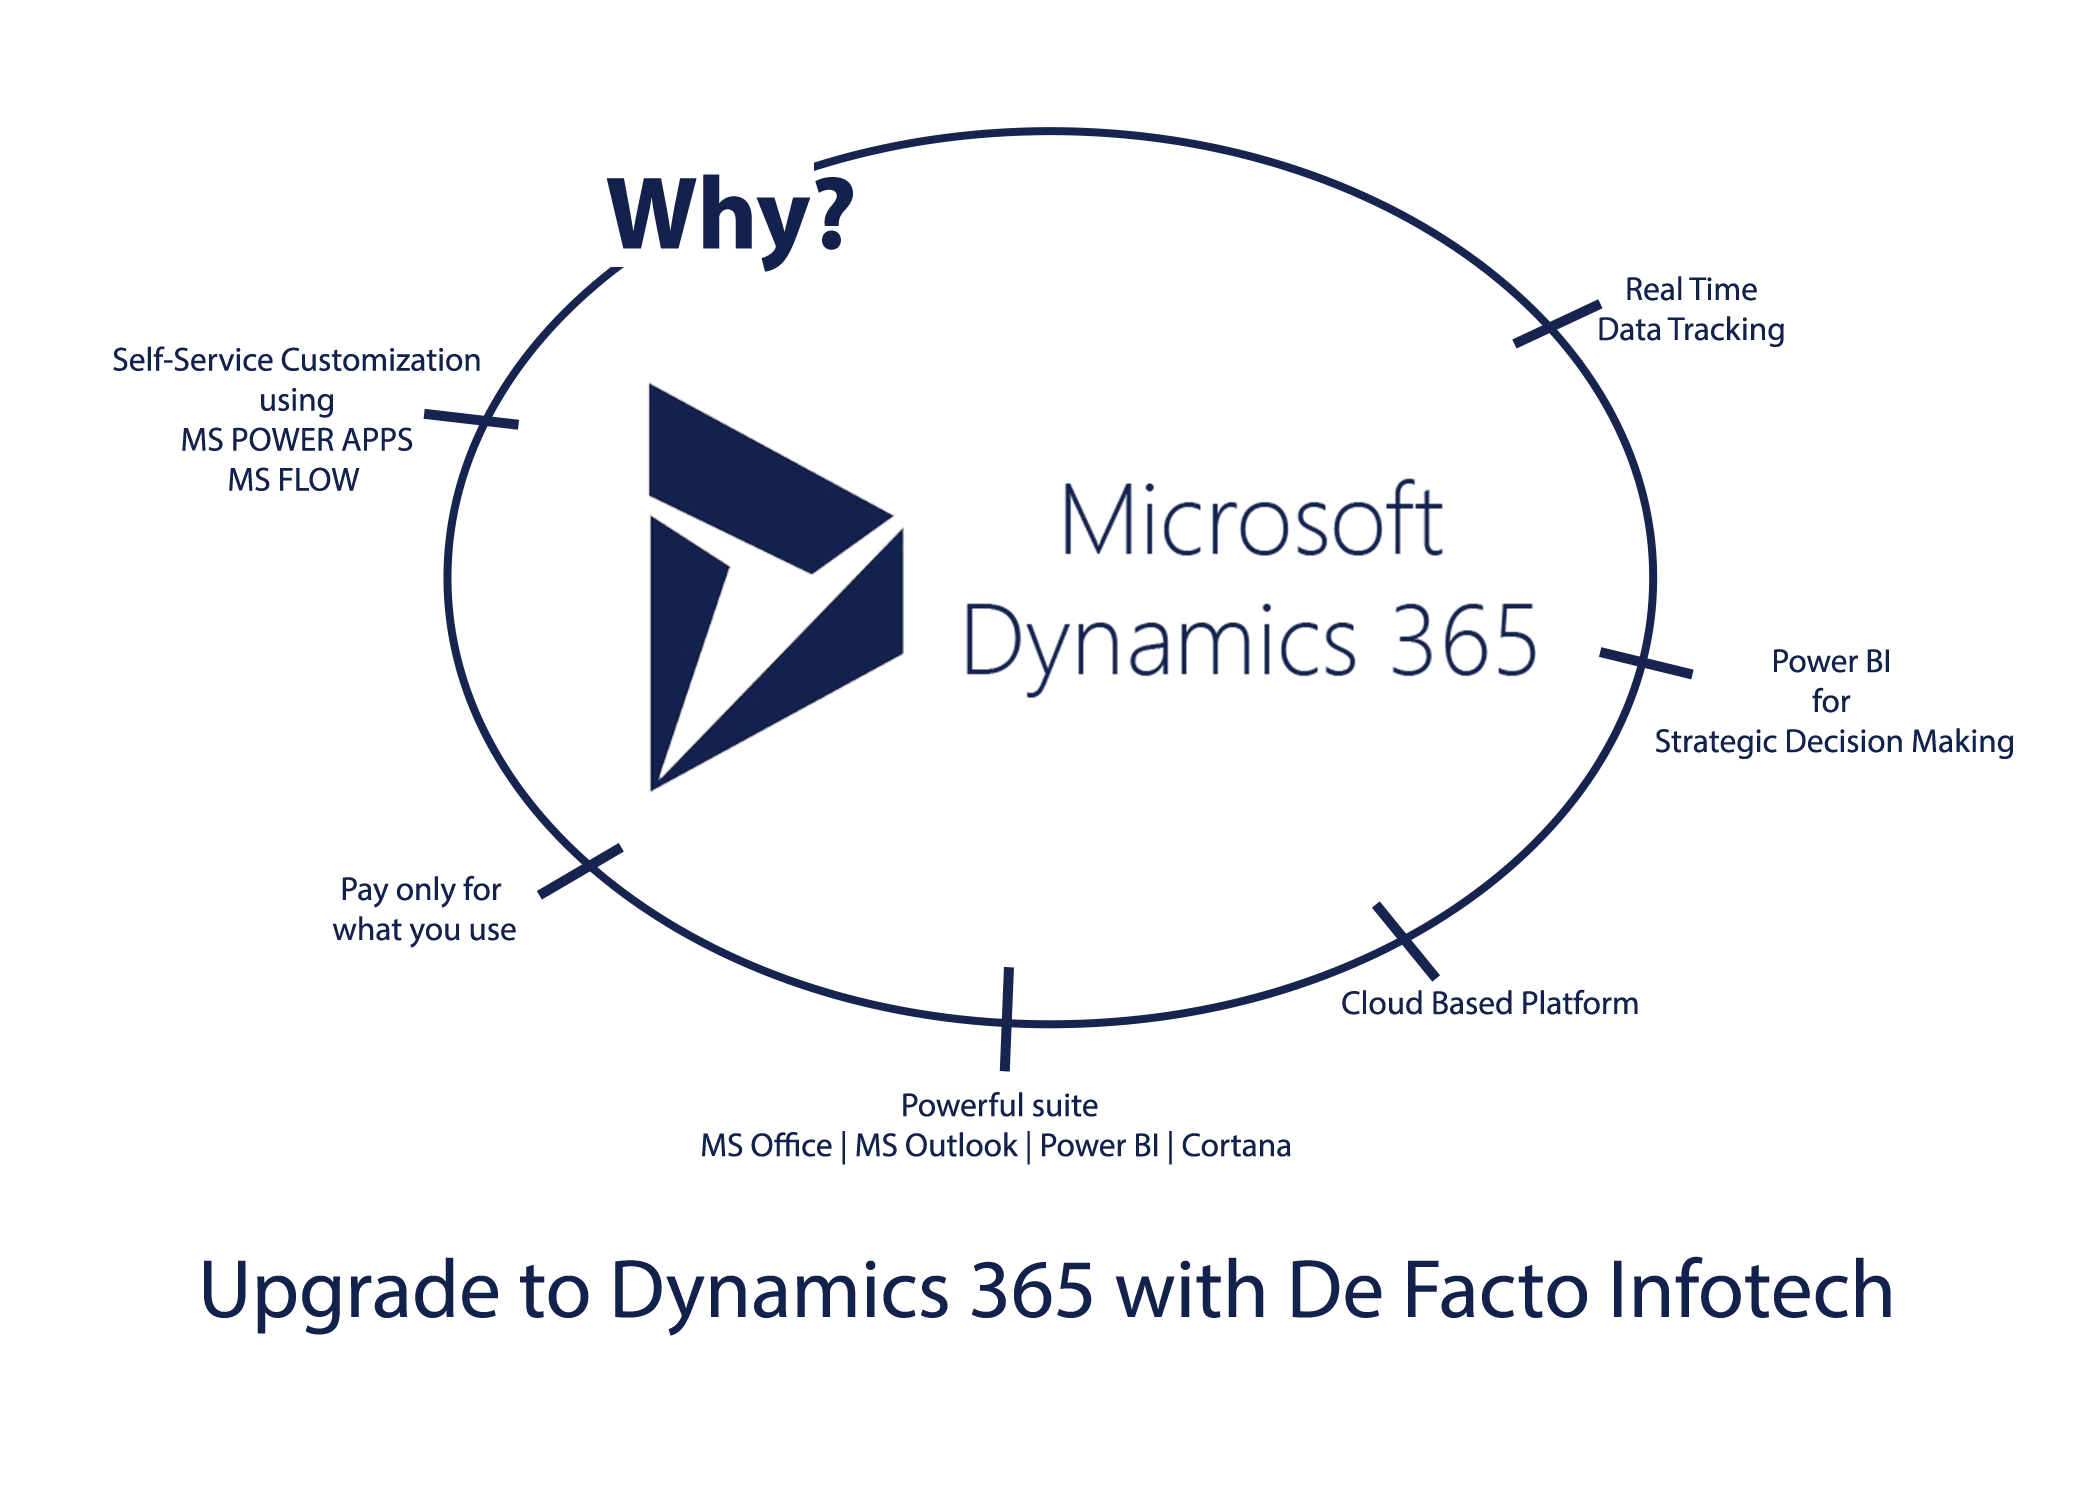 Why upgrade to Dynamics 365 now?